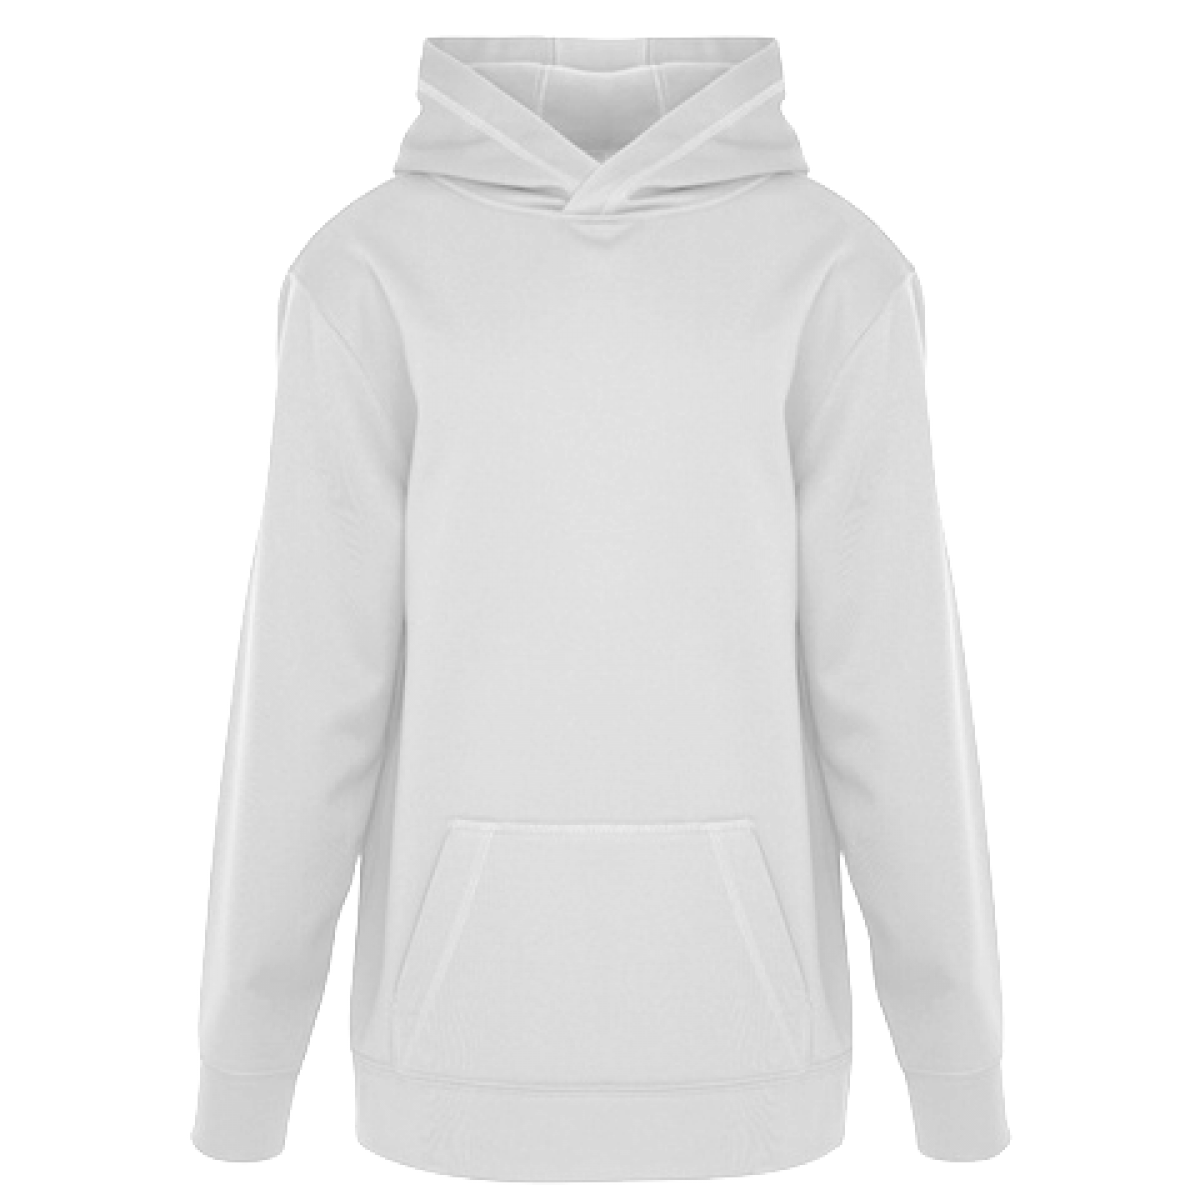 Game Day Fleece Hooded Ladies Sweatshirt-White-XL